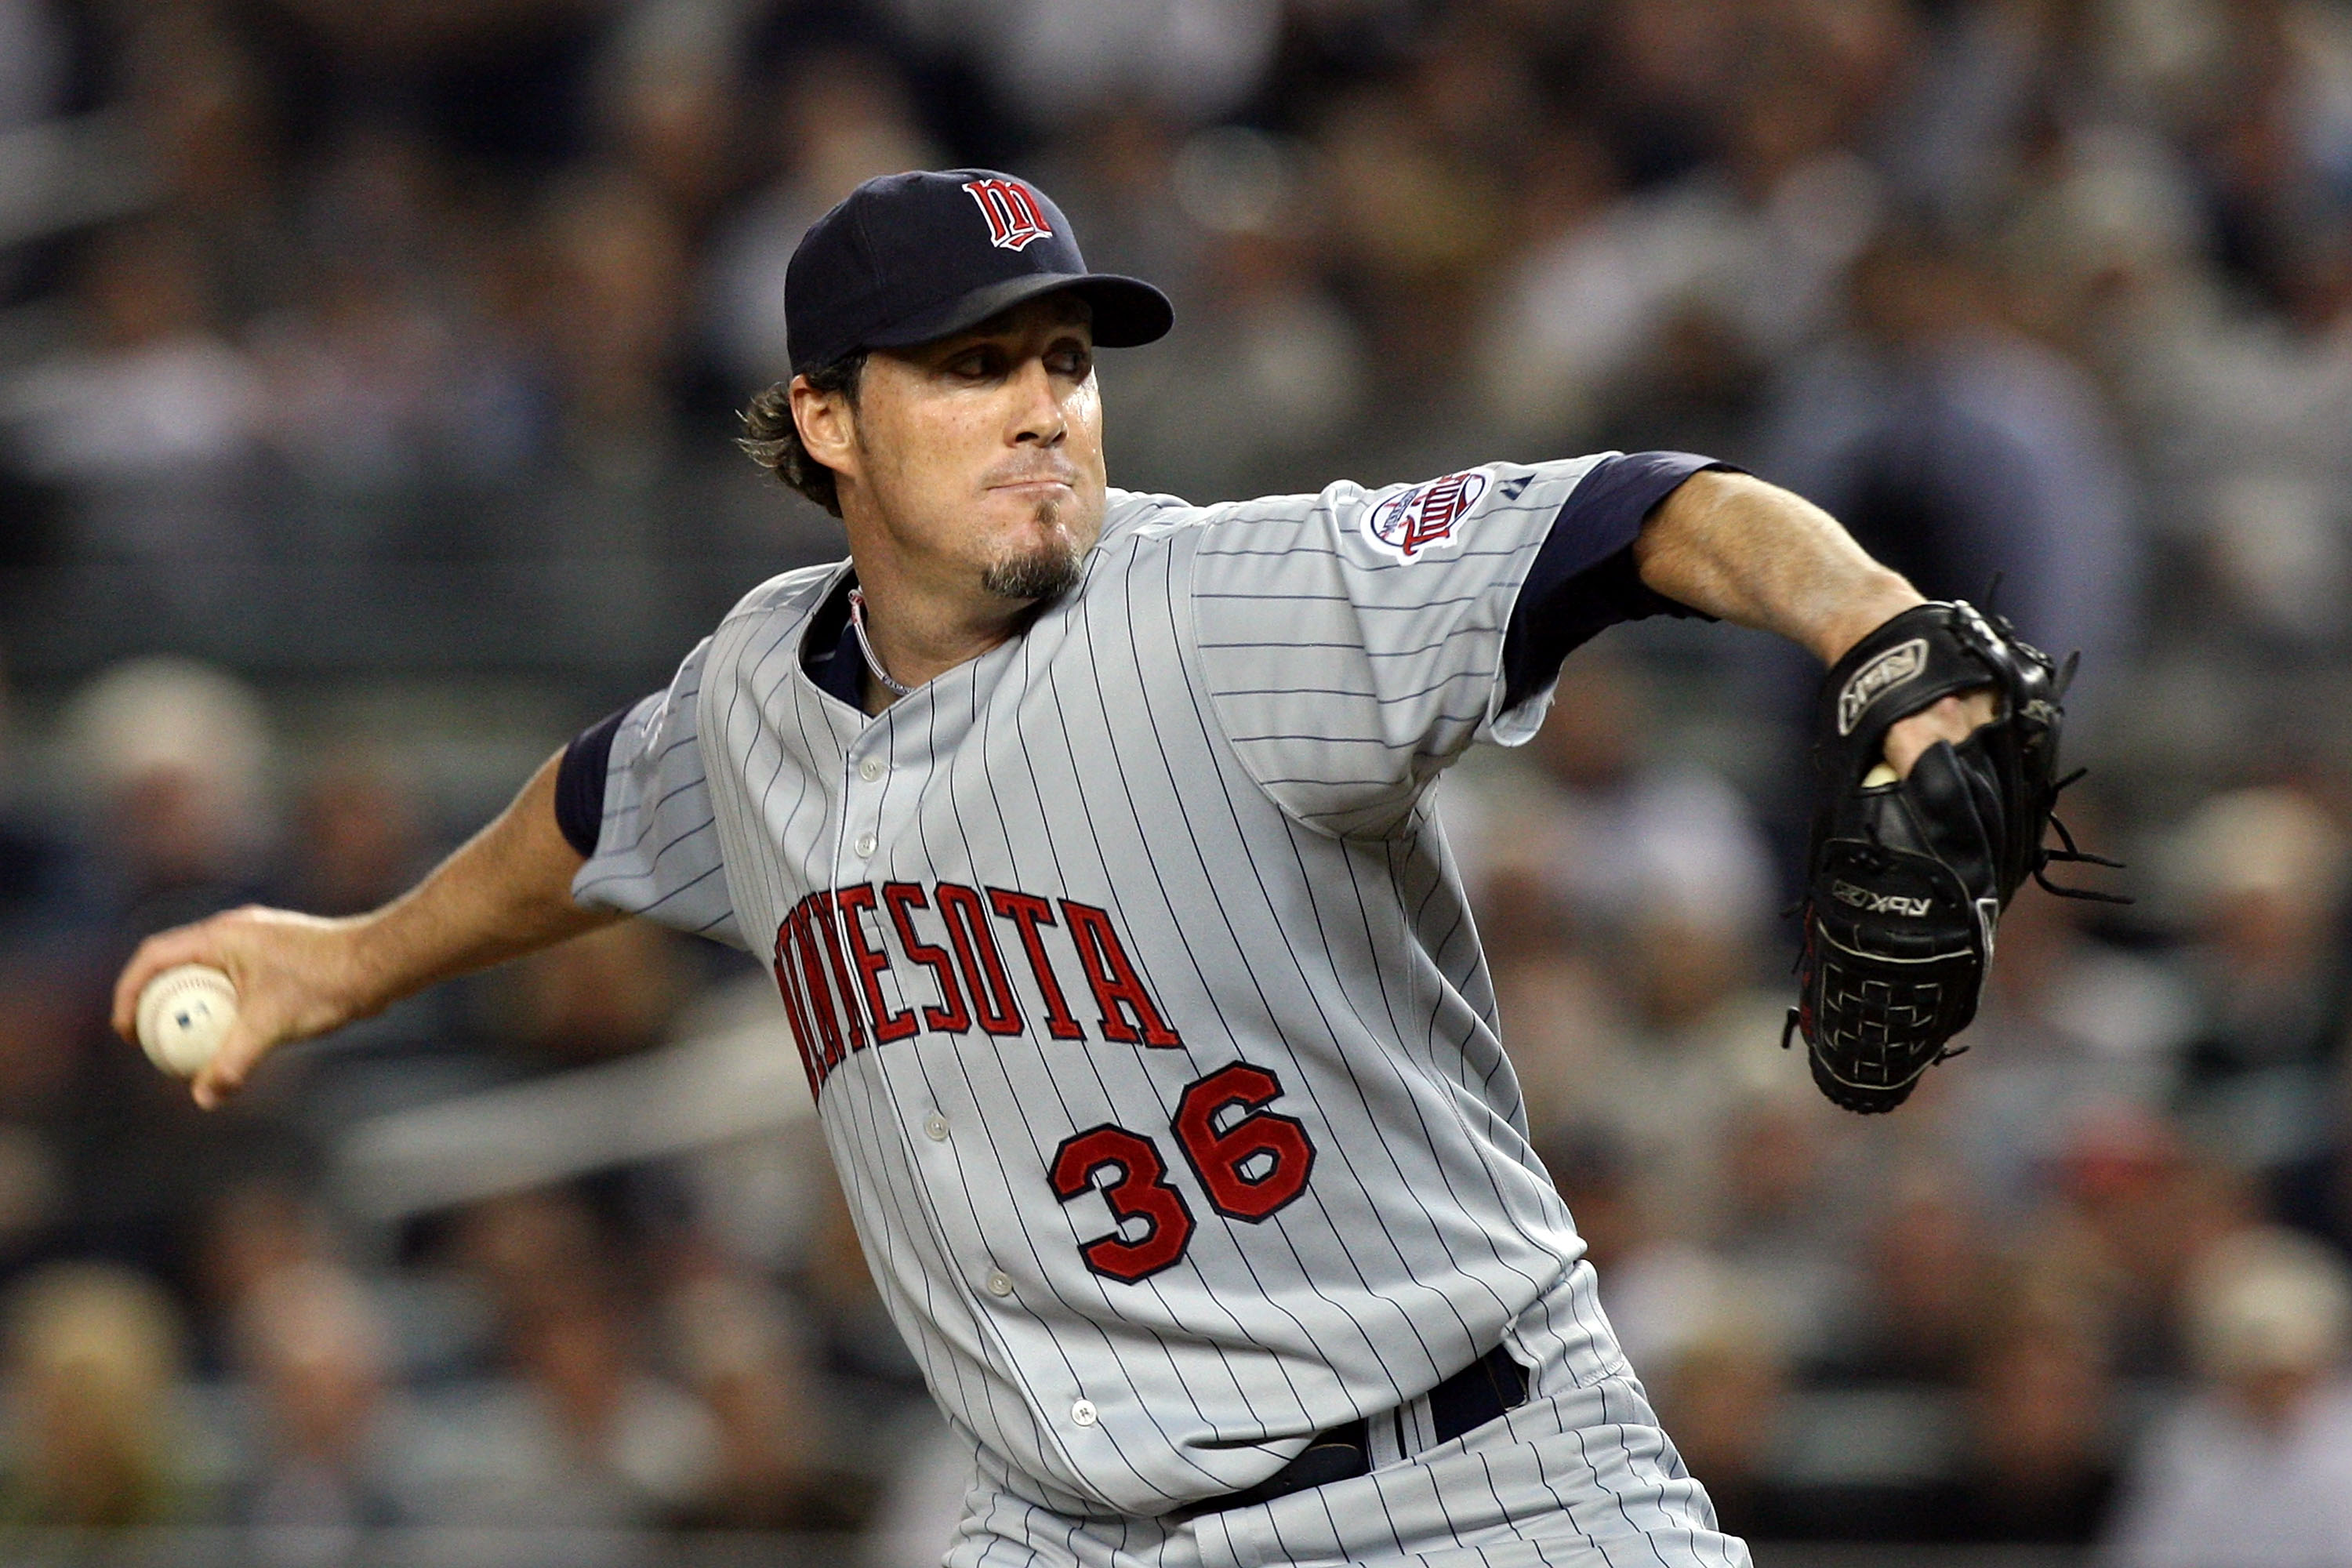 NEW YORK - OCTOBER 09:  Joe Nathan #36 of the Minnesota Twins pitches against the New York Yankees in Game Two of the ALDS during the 2009 MLB Playoffs at Yankee Stadium on October 9, 2009 in the Bronx borough of New York City.  (Photo by Jim McIsaac/Gett